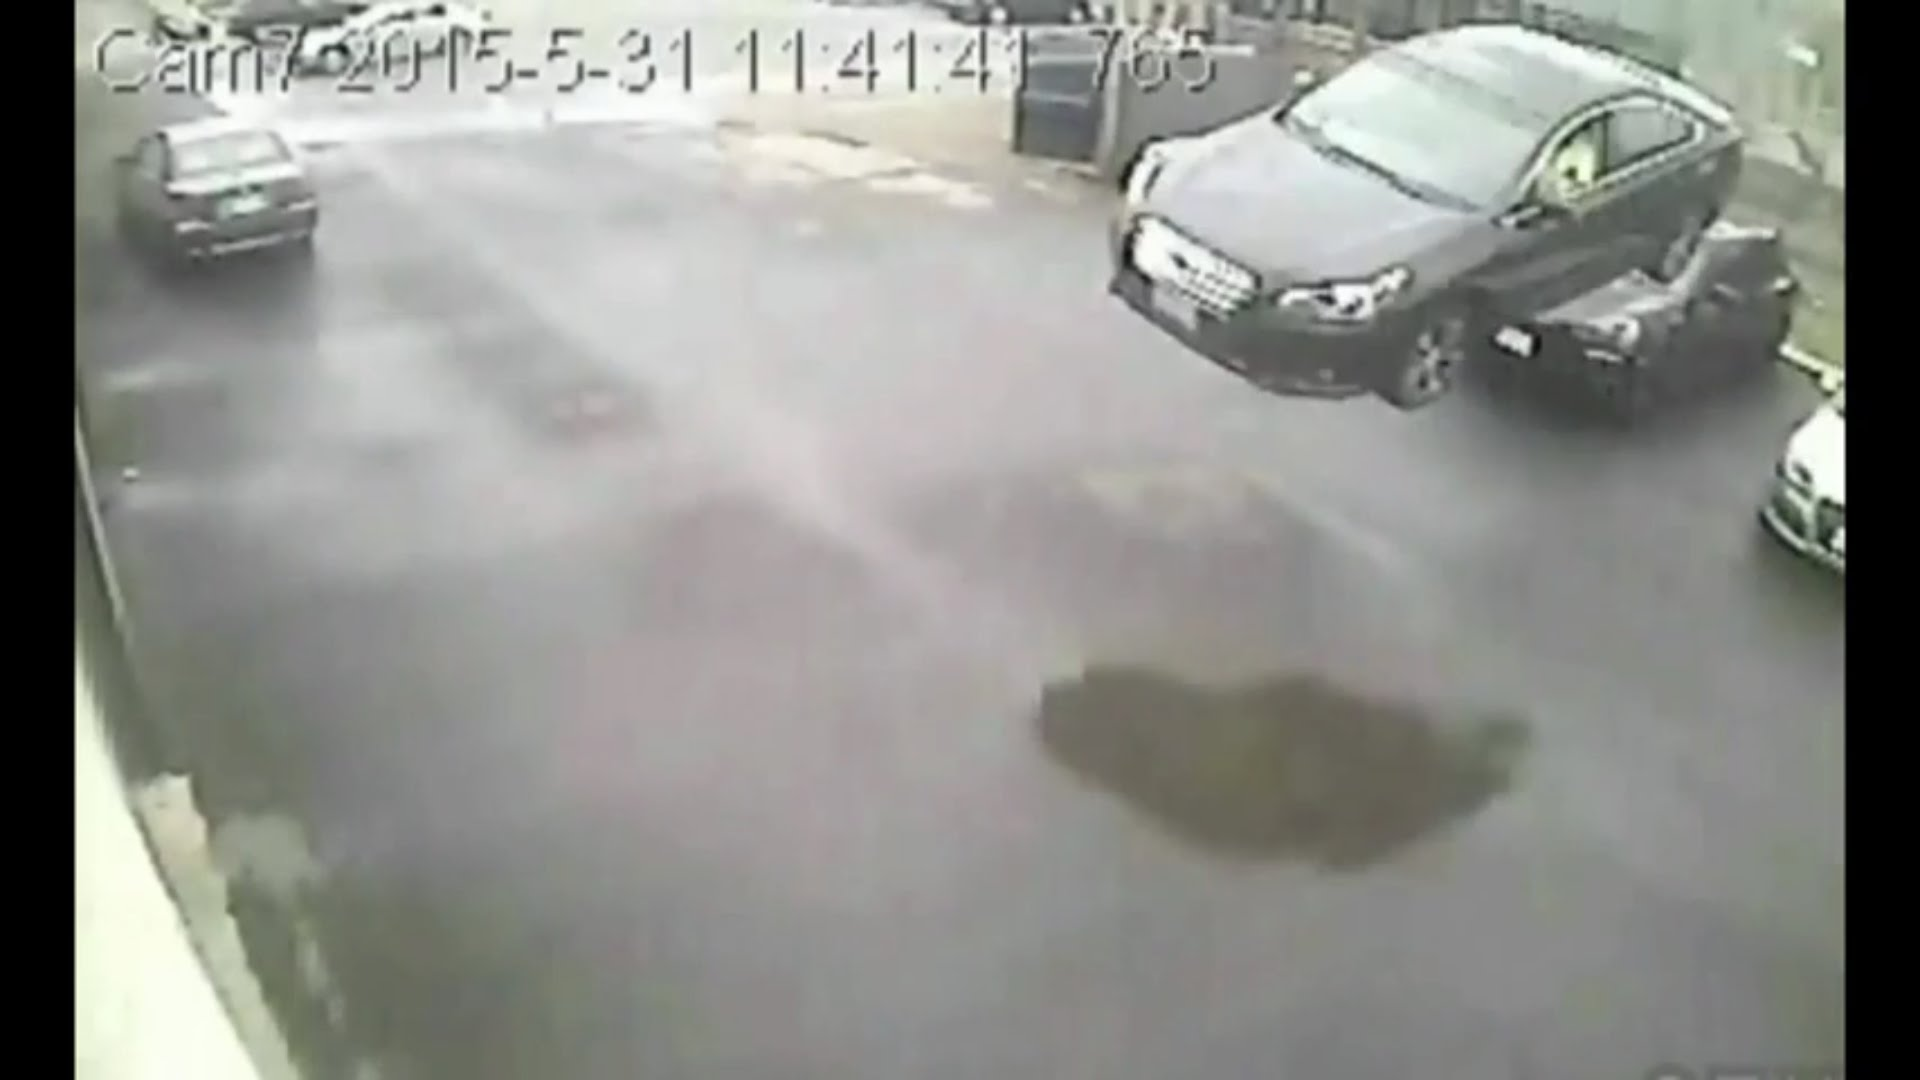 INSANE Footage! Car Flies Through The Air Crashes Into The Building